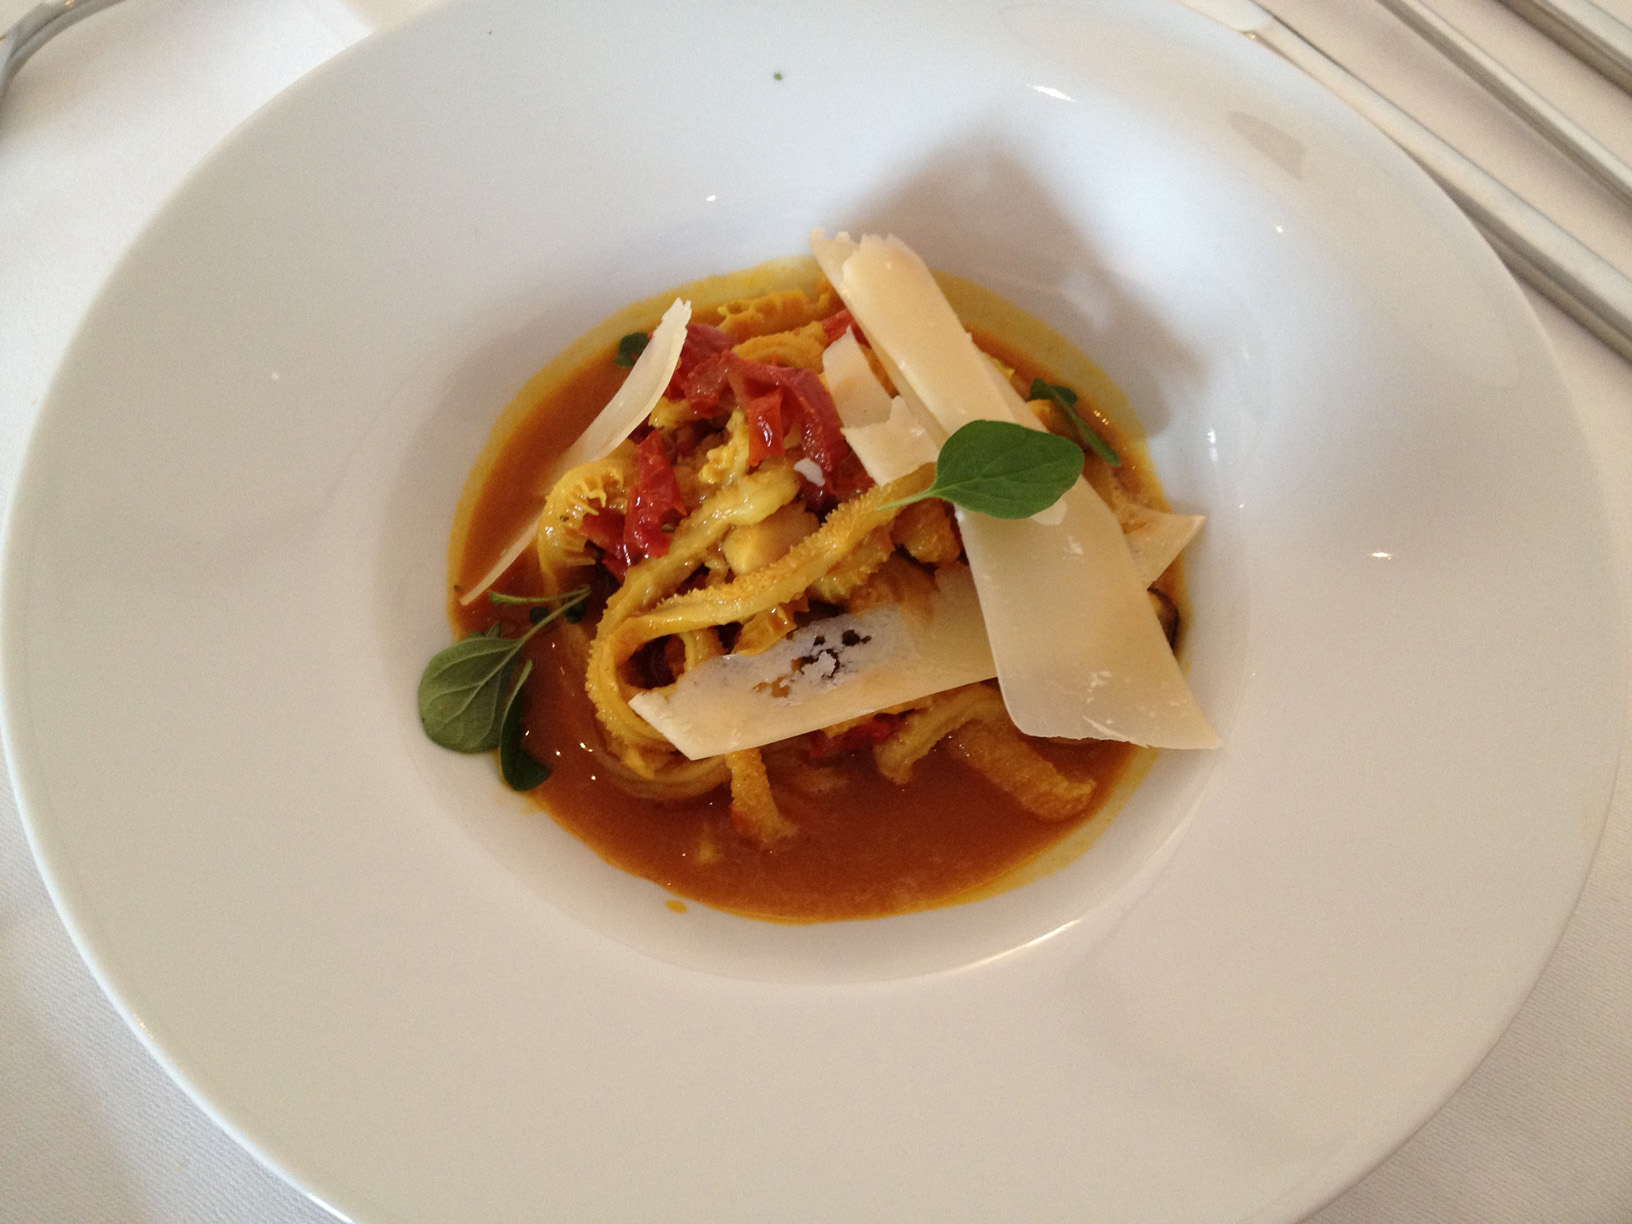 Tripe with mussels in a tomato-pernod gravy